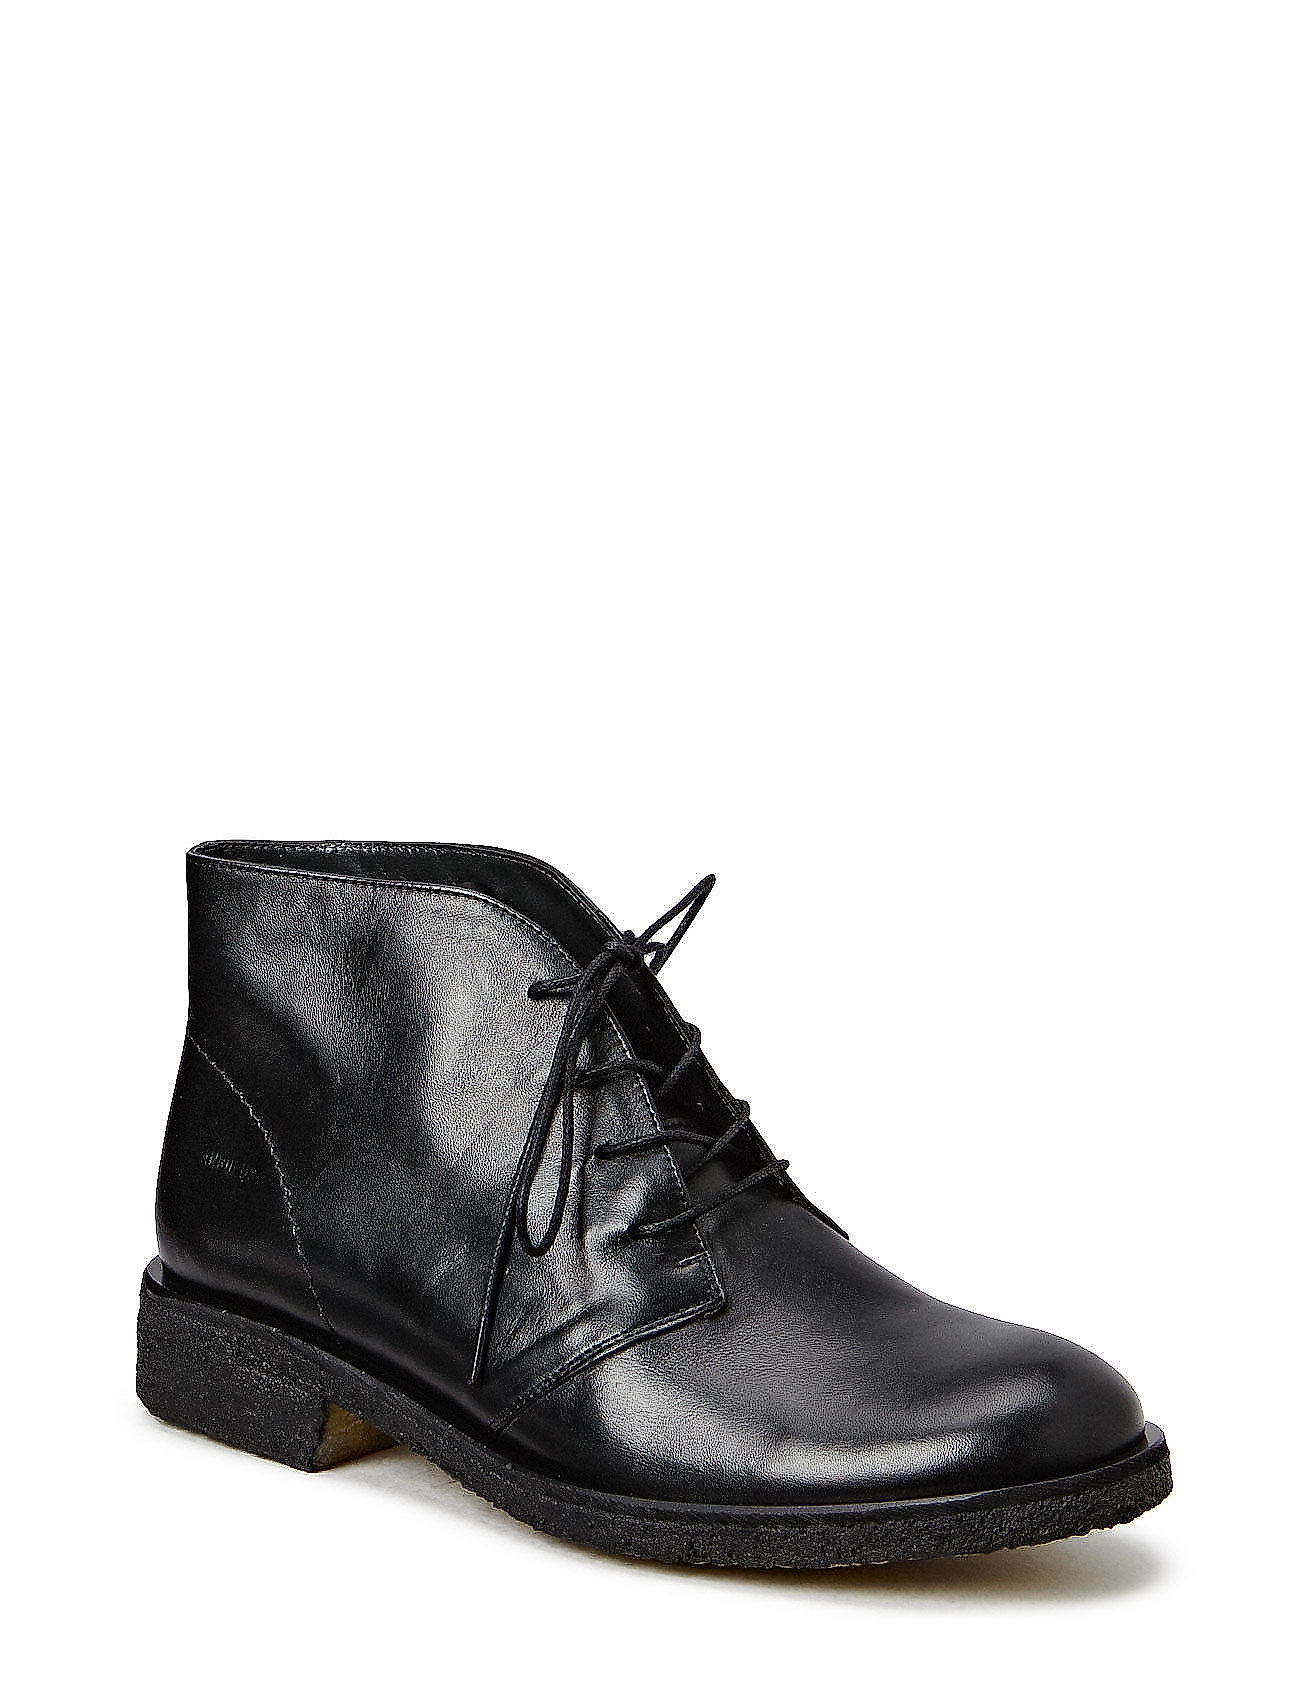 Image of Booties - Flat Shoes Boots Ankle Boots Ankle Boot - Flat Sort ANGULUS (3484039653)